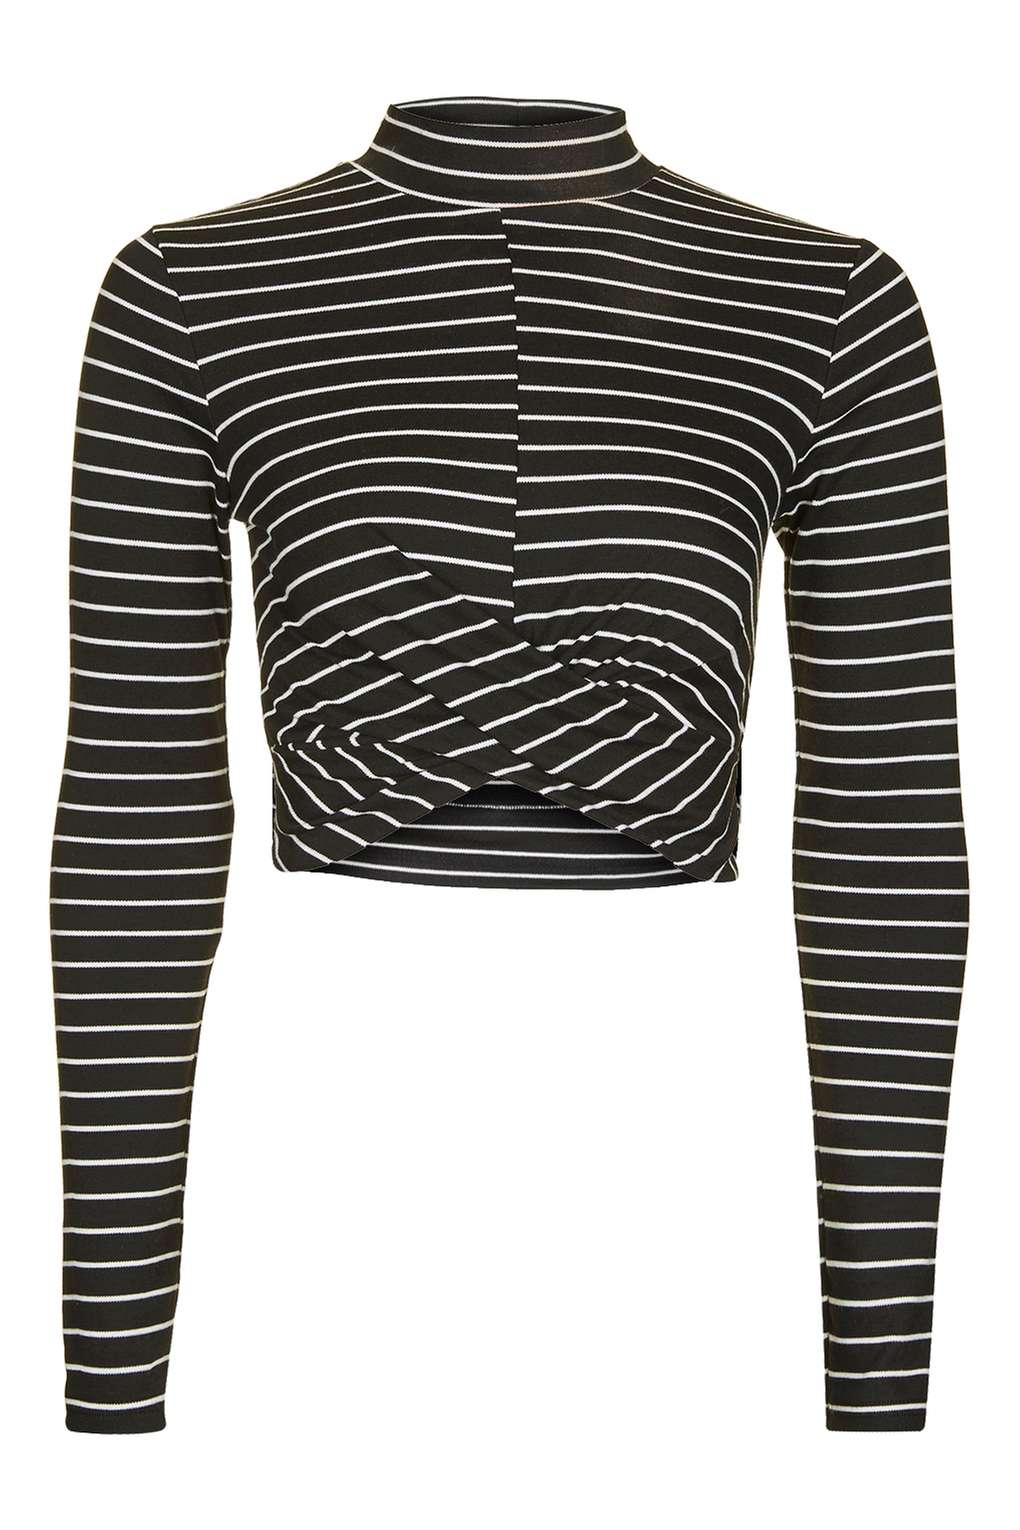 TOPSHOP BLACK & WHITE CROPPED TOP